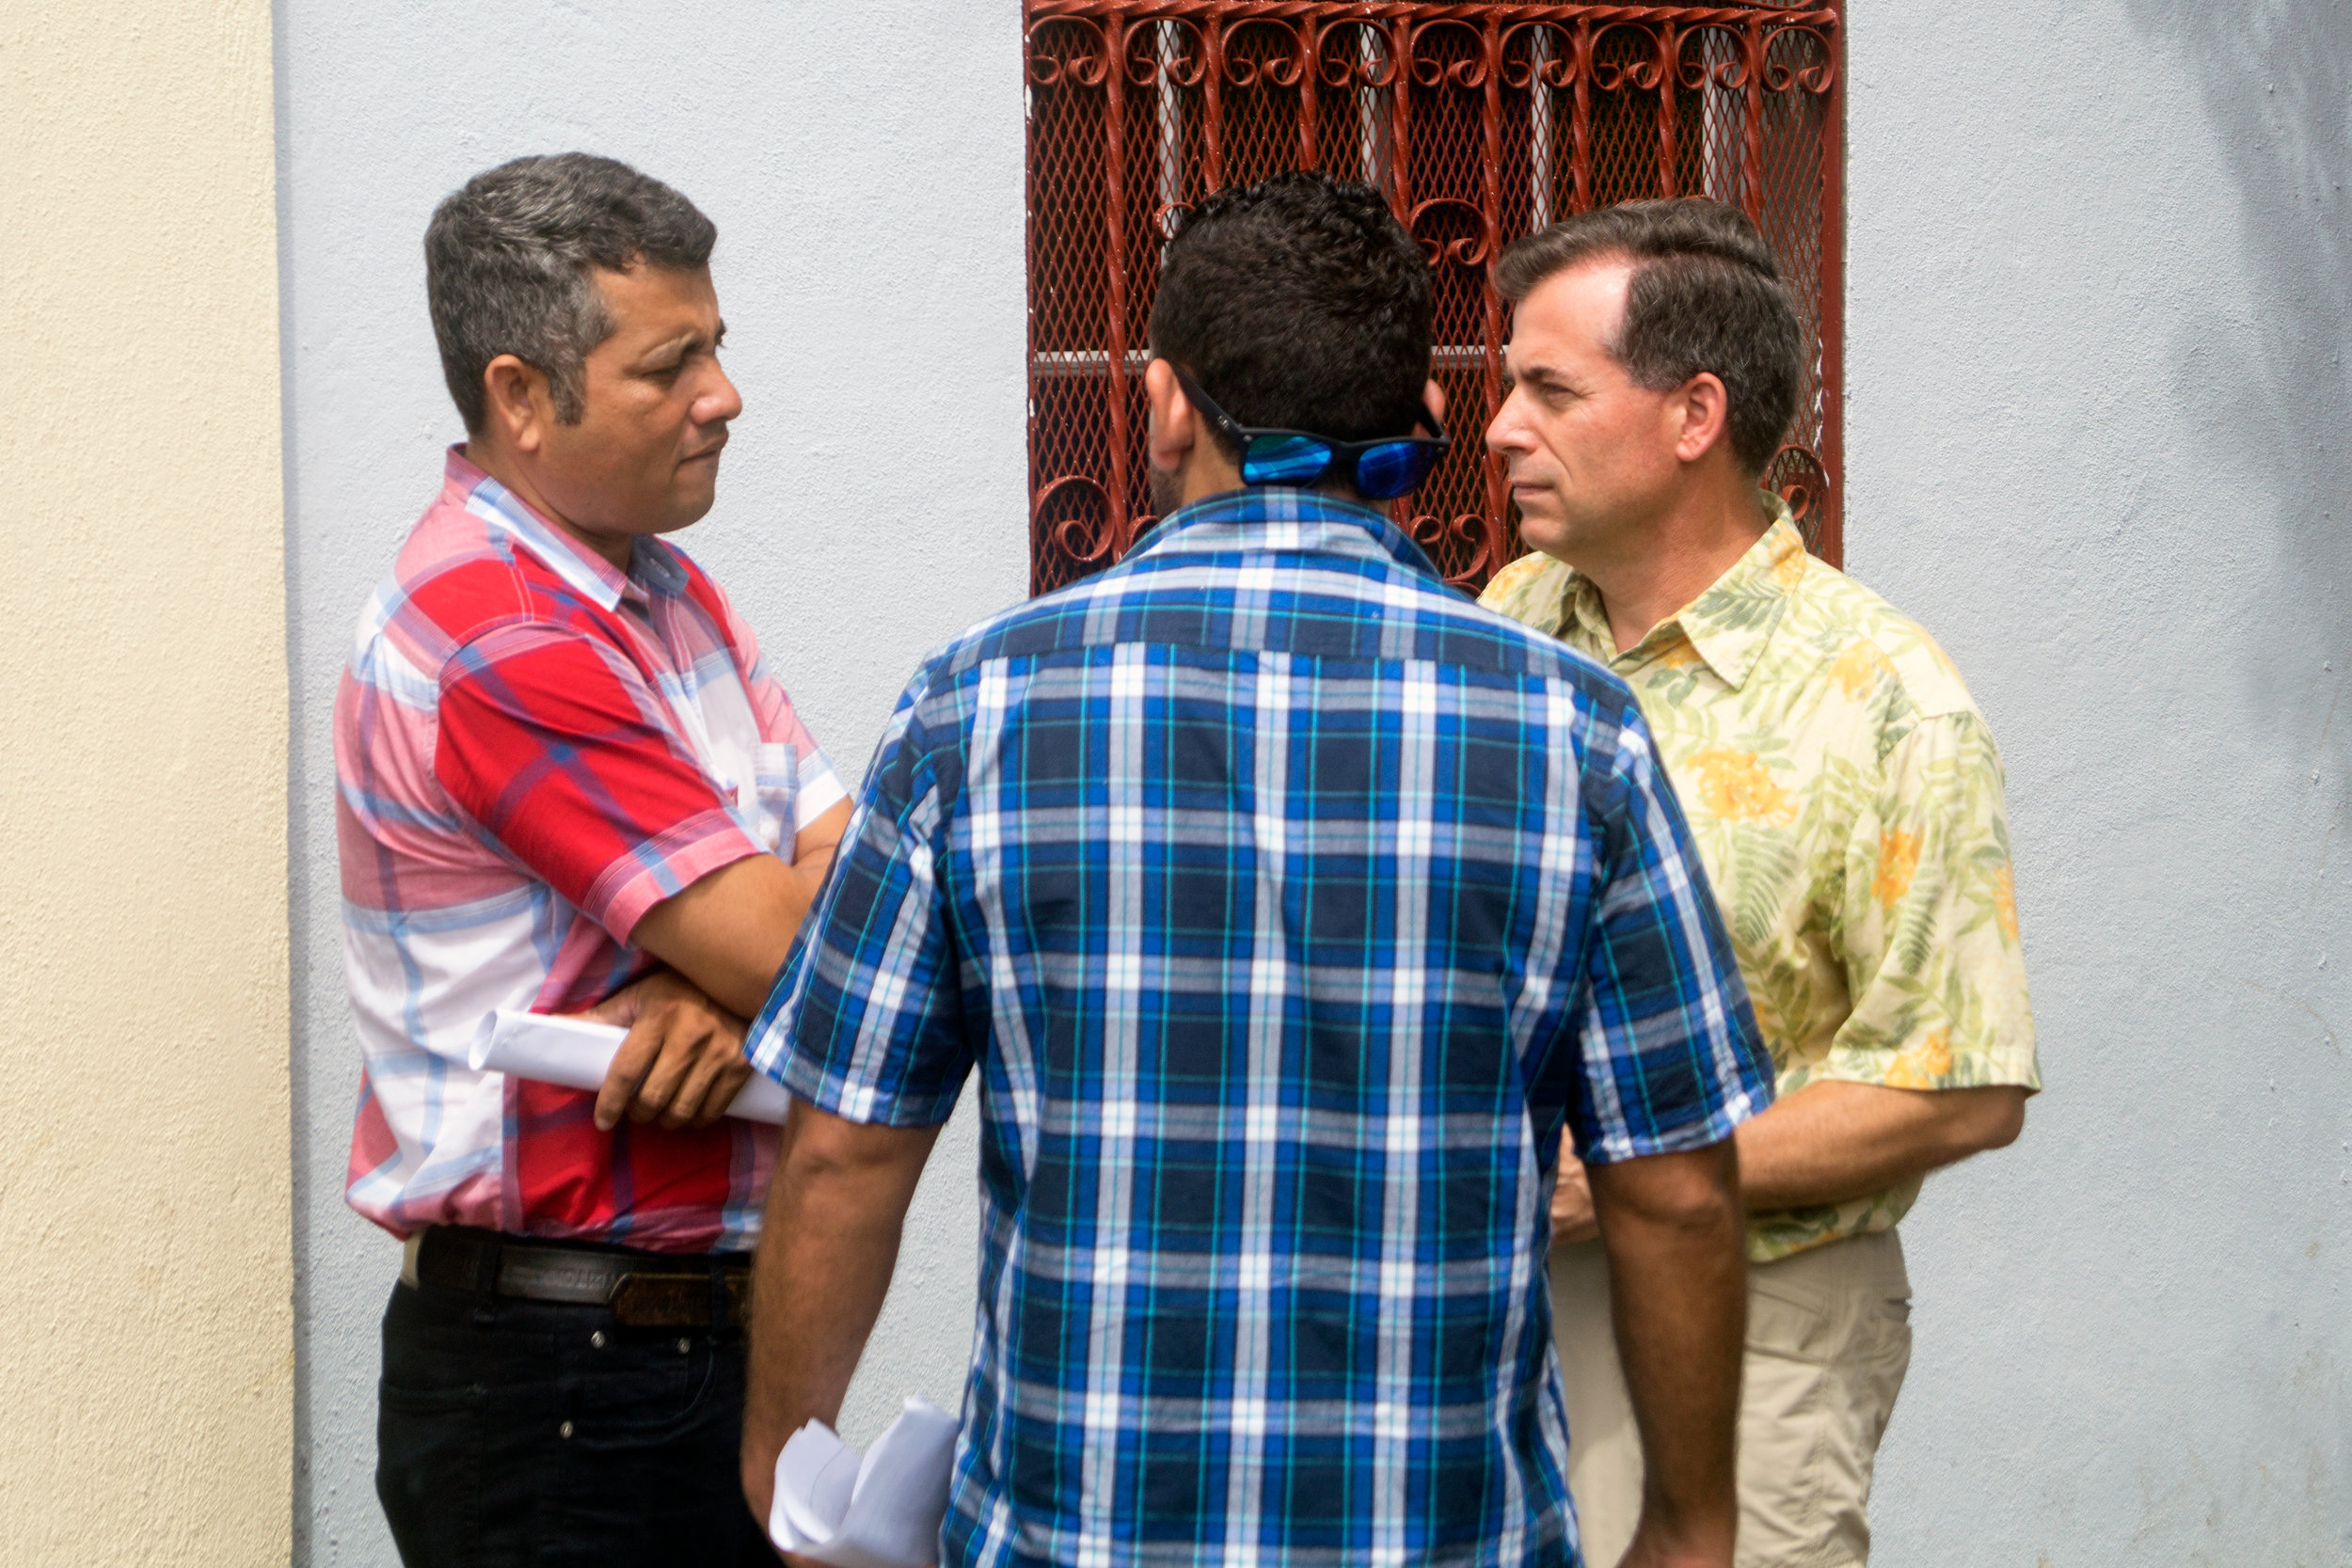 Pastor schlicker talks with a brother nicaraguan pastor about the challenges and joys of ministry.